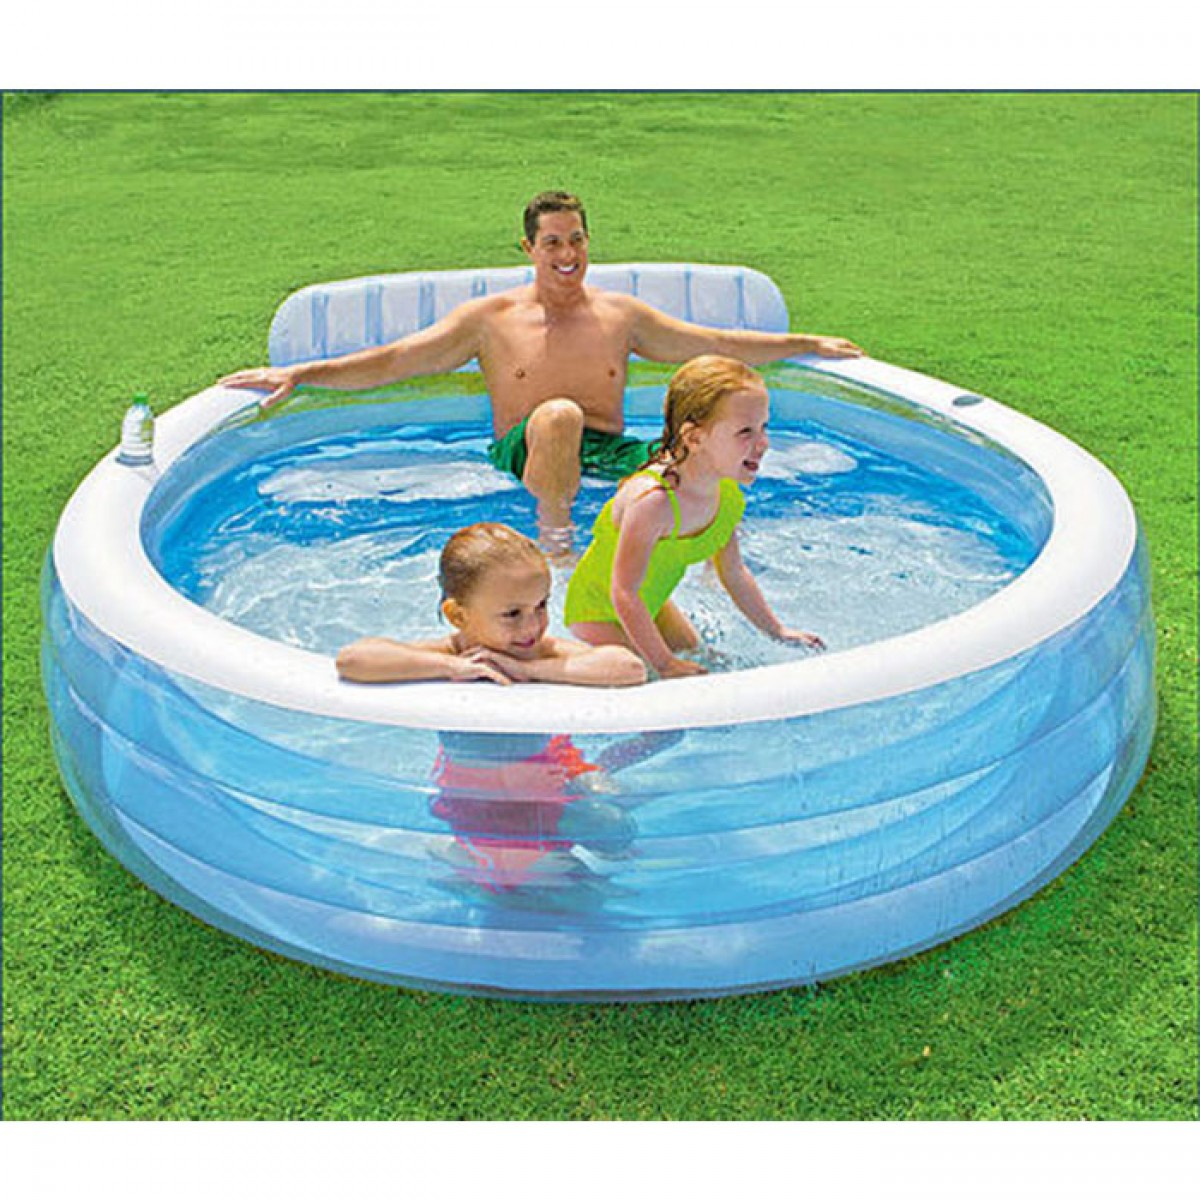 Piscine gonflable avec vidange for Piscine intex gonflable